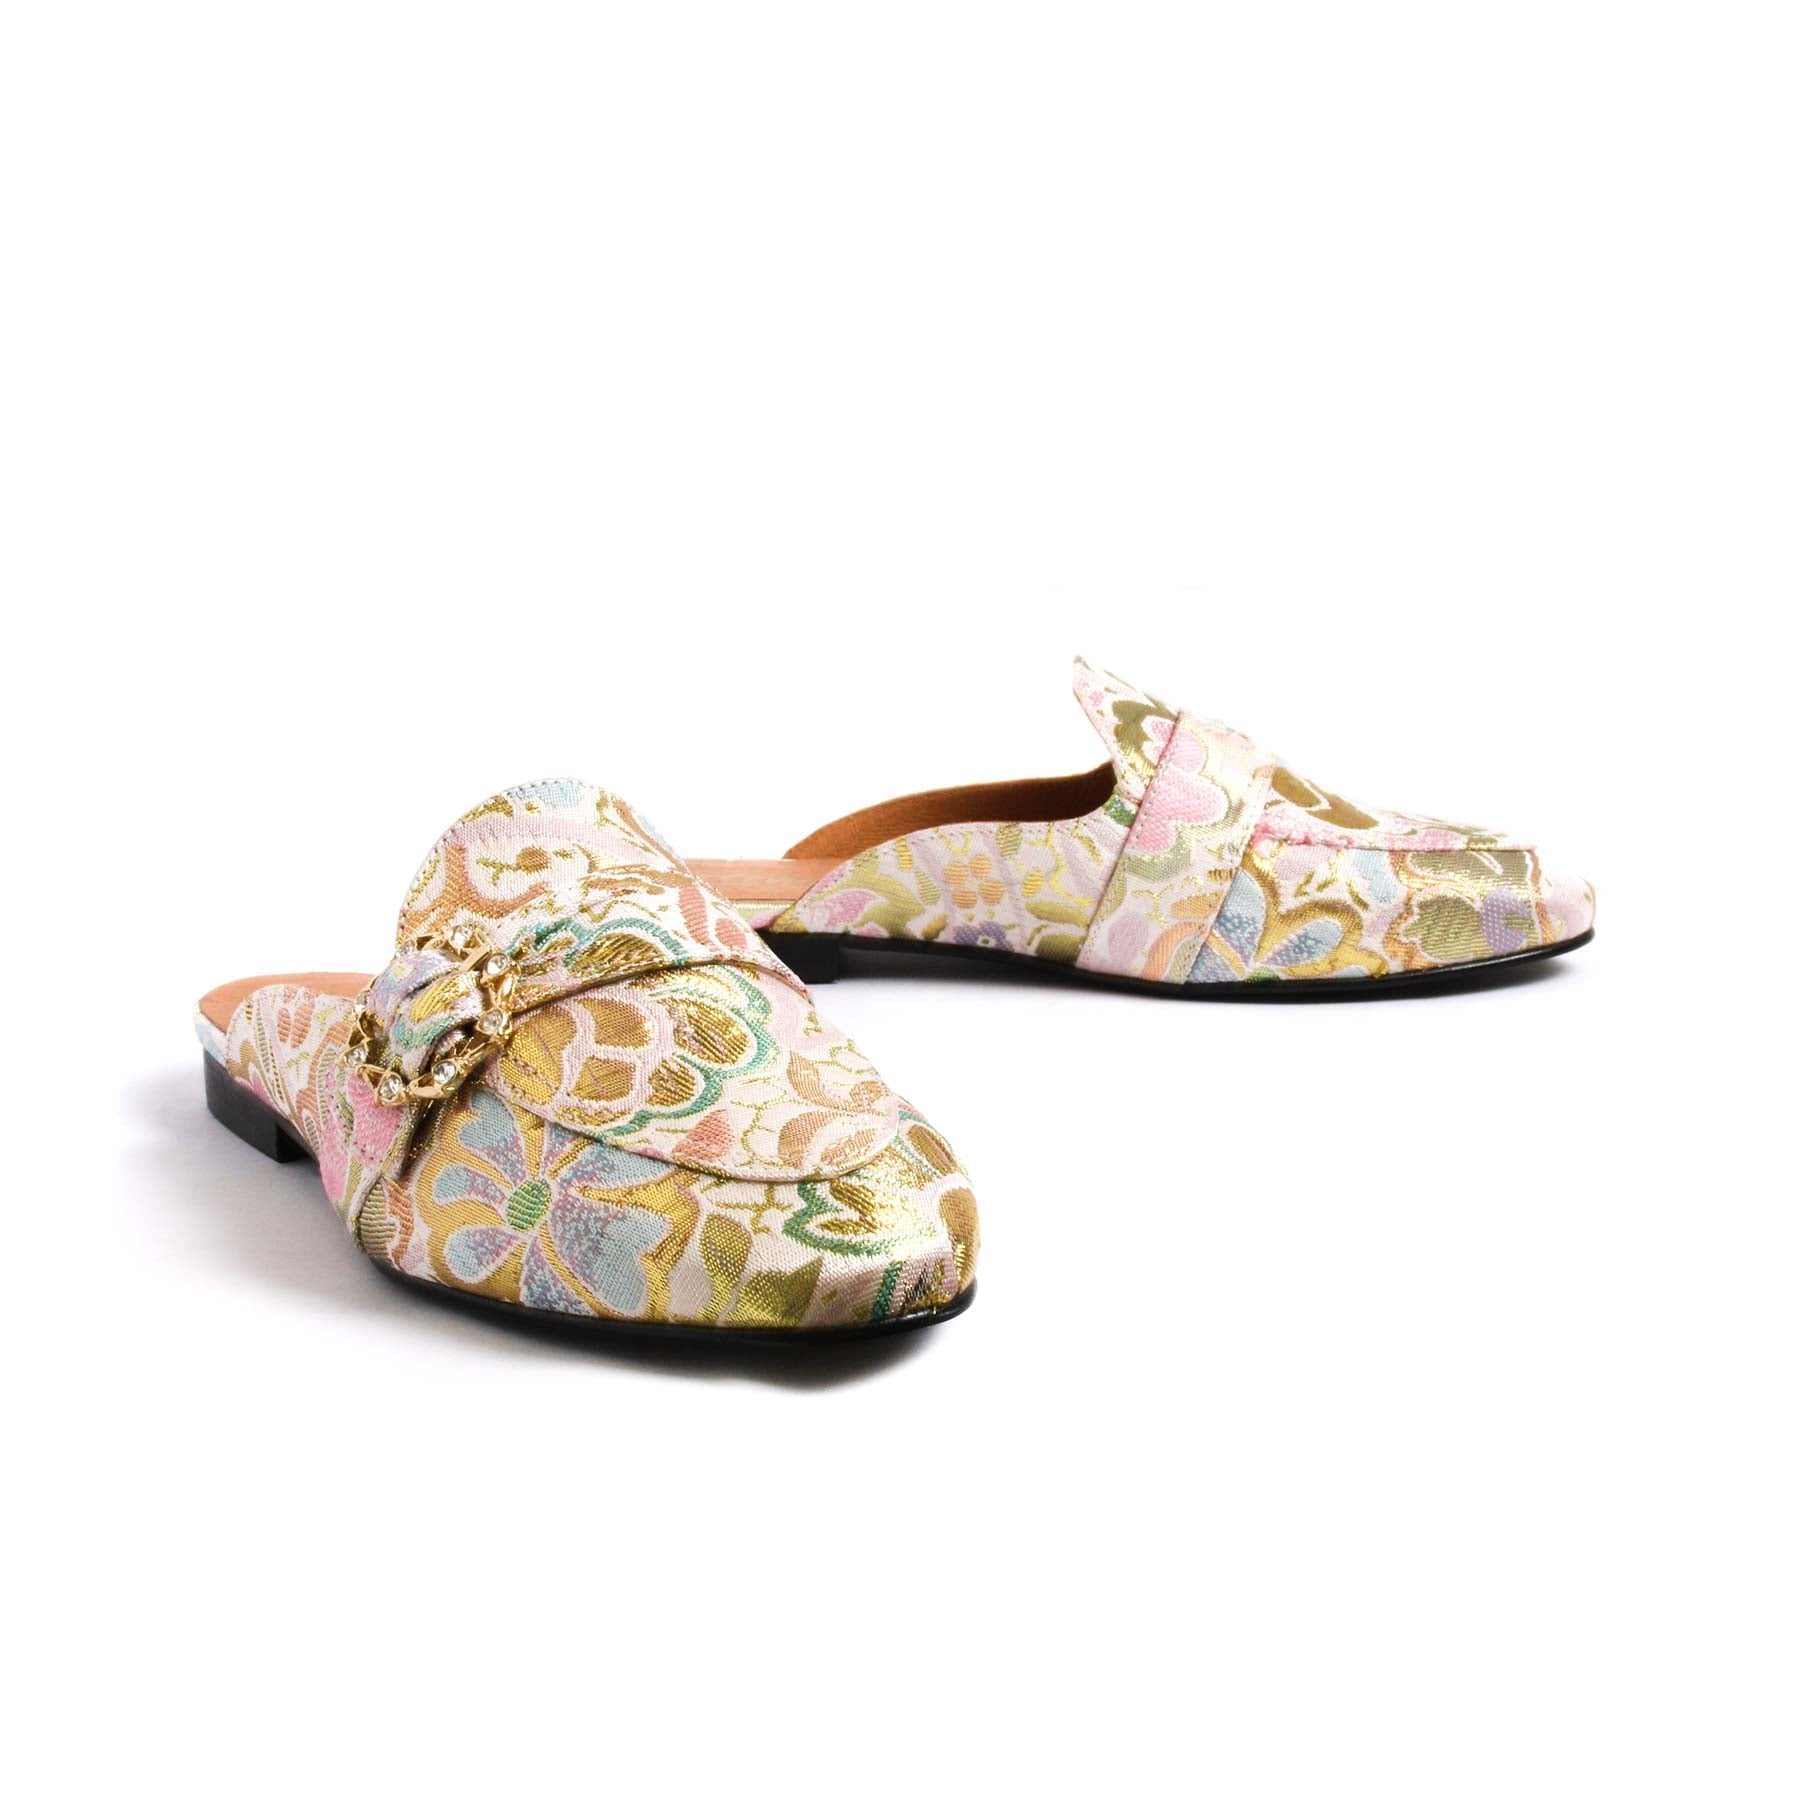 Shoes, Curu Pink Brocade - Lintervalle shoes for woman